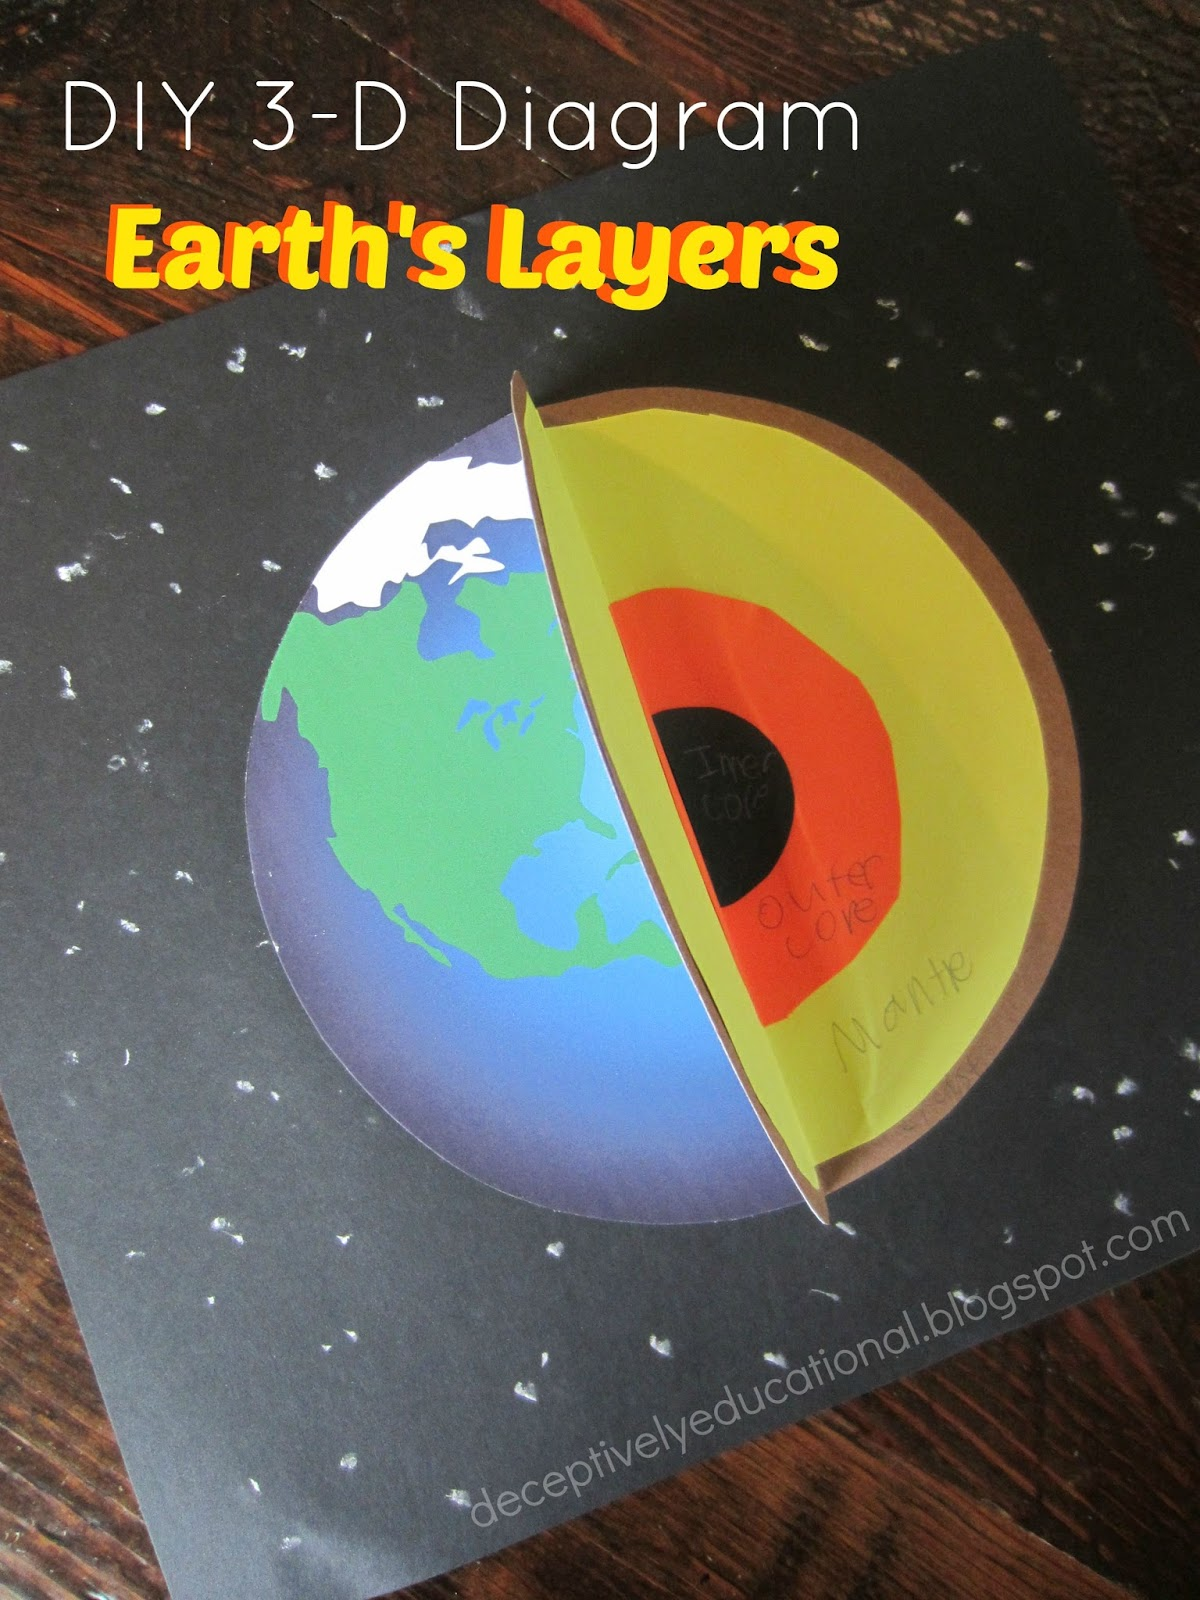 Relentlessly fun deceptively educational earths layers diy 3 d he really enjoyed seeing how his diagram came together and now he can refer to it any time to see just what exactly is deep deep underneath our feet ccuart Gallery